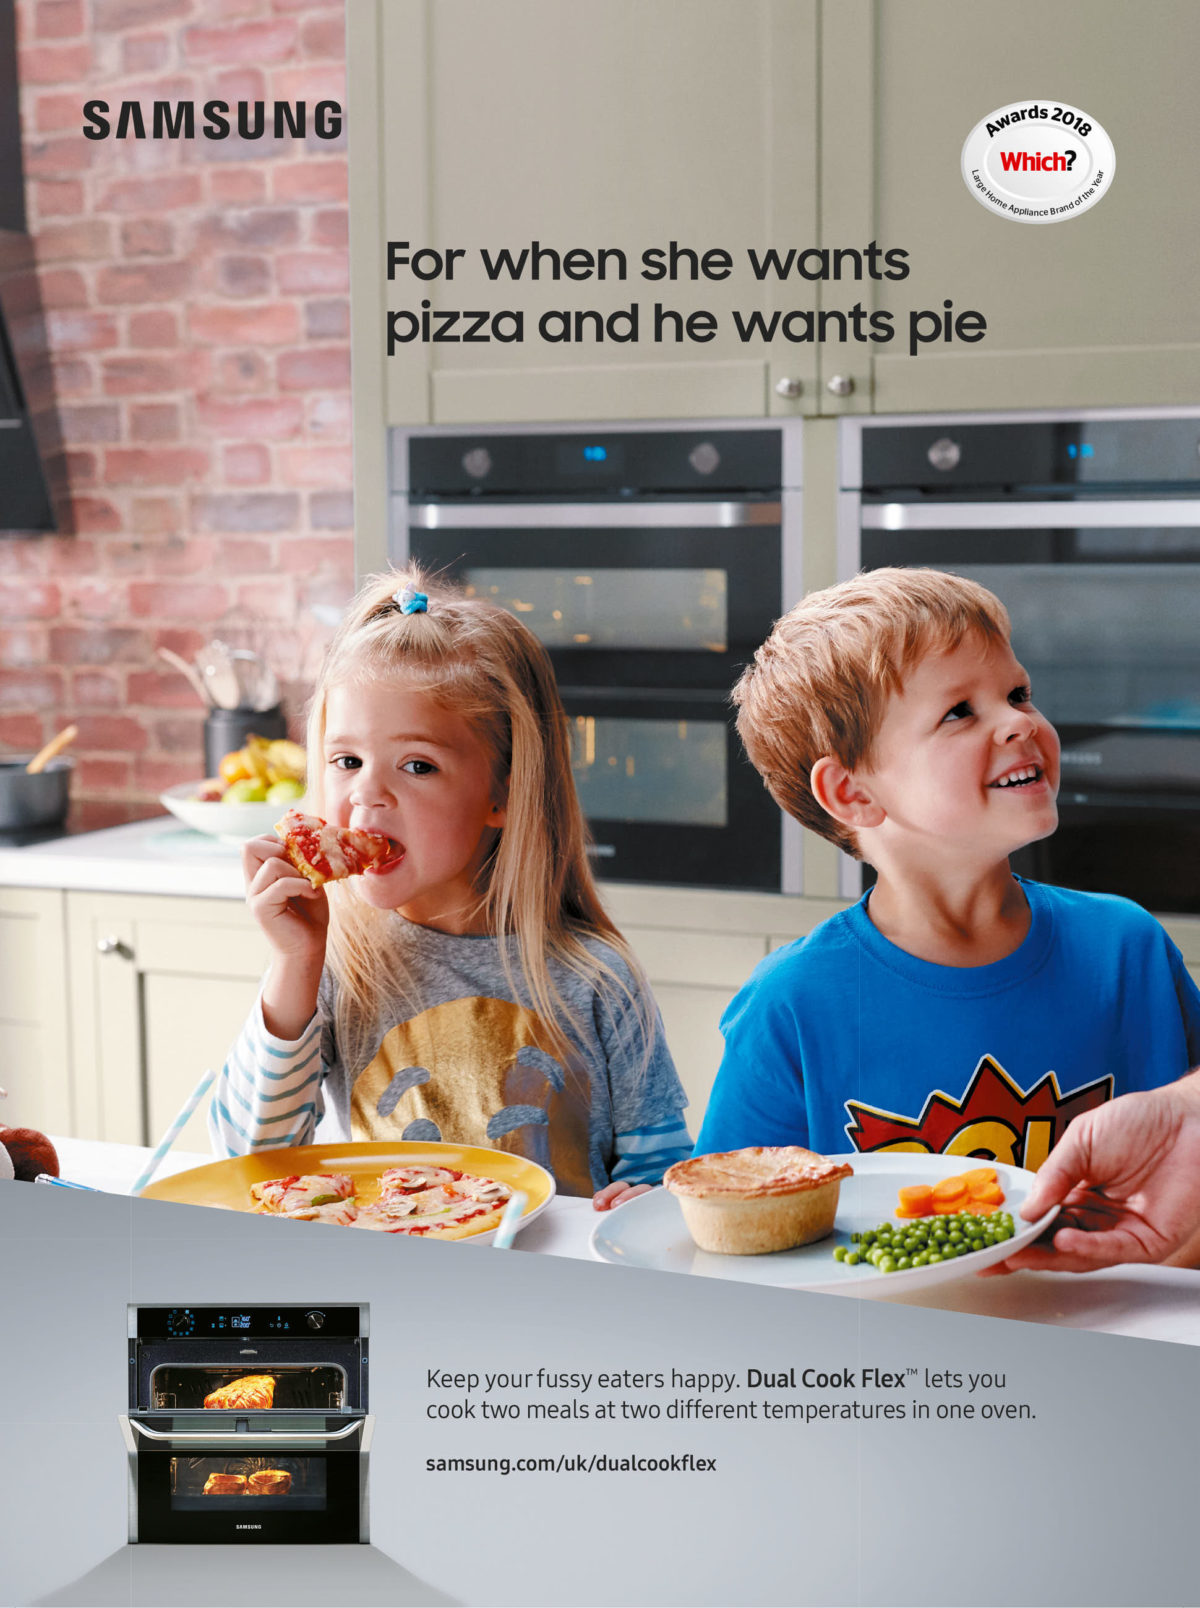 11305899-SAMSUNG-H2-UK-DC-OVEN_XMAS-BBC_GF_FOOD-SP-215x290.indd - Samsung – How we live - Jack Terry